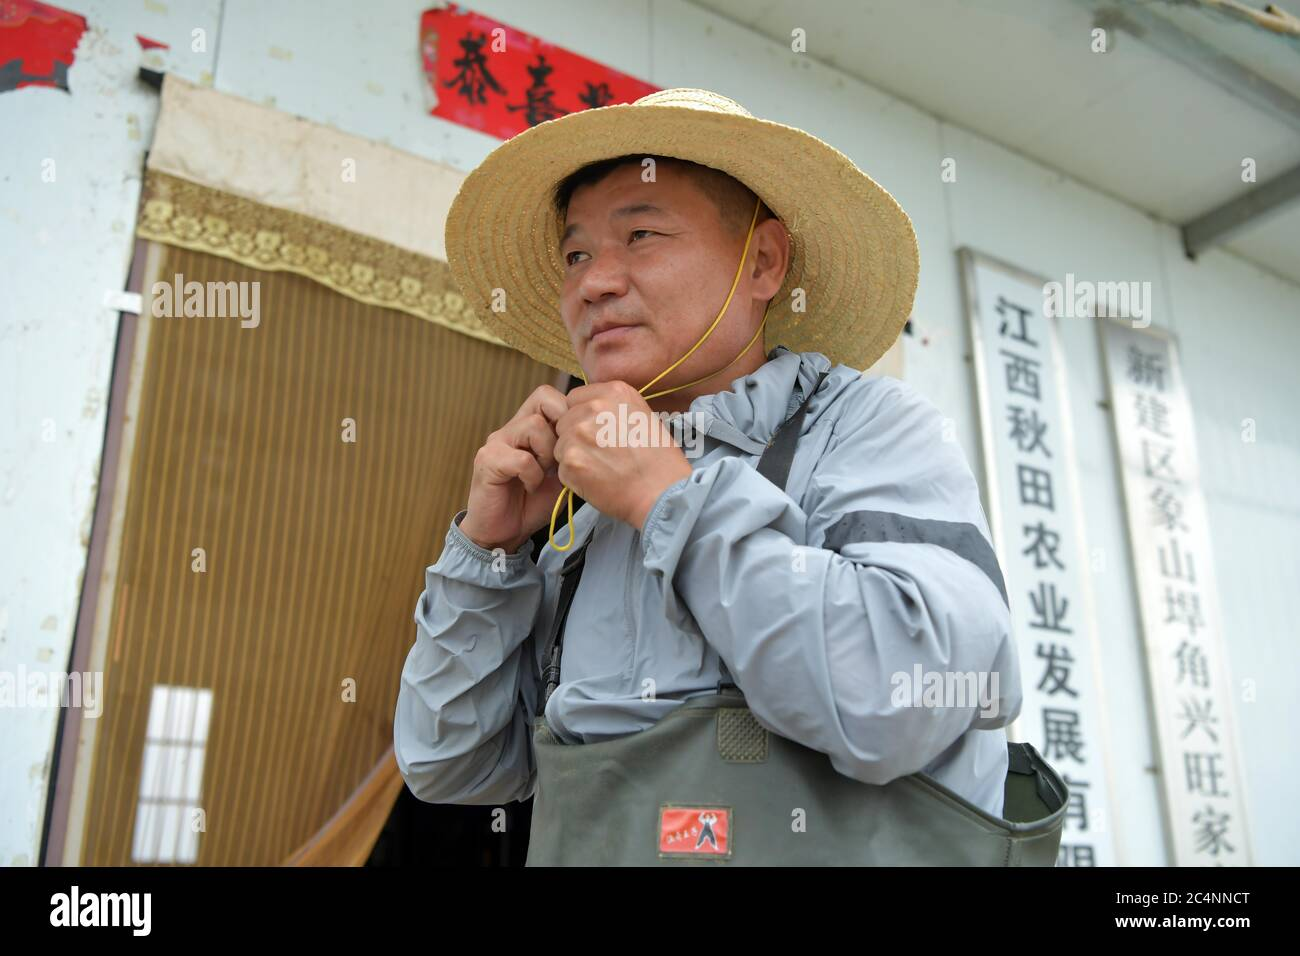 (200628) -- NANCHANG, June 28, 2020 (Xinhua) -- Wu Huashan wears an outfit to harvest crayfish in Xiangshan Township of Nanchang, east China's Jiangxi Province, June 5, 2020. Having learned fishing at an early age with his parents, Wu was a skilled fisherman and was head of a local fishery association. In late 2019, he bade farewell to his boats and started a crayfish business. China began a 10-year fishing moratorium from the beginning of this year in 332 conservation areas in the Yangtze River basin, which will be expanded to all the natural waterways of the country's longest river and its m Stock Photo